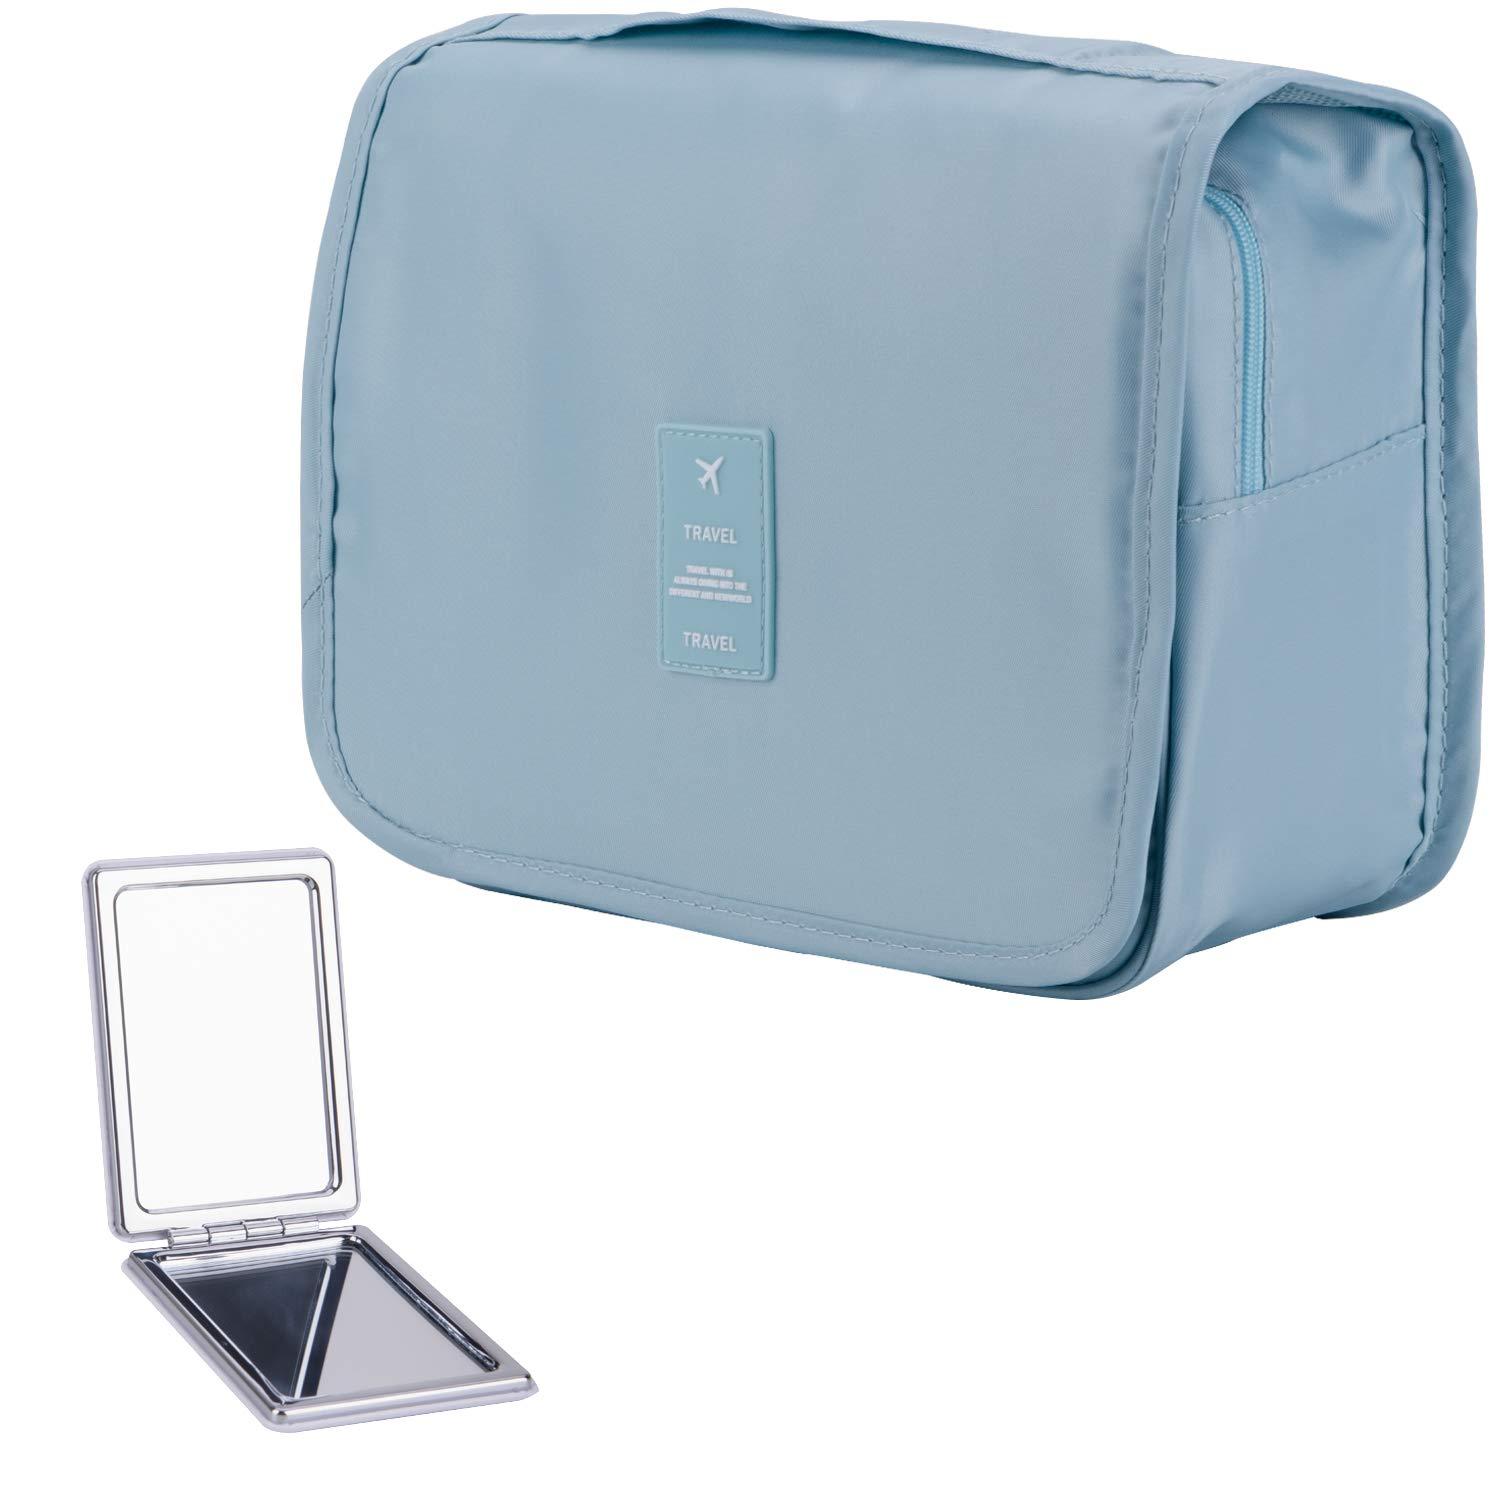 LAKIBOLE Hanging Toiletry Bag with Travel Mirror, Multifunction Cosmetic Bag Portable Makeup Pouch Waterproof Travel Hanging Organizer Bag for Women Girls (Korean Blue)